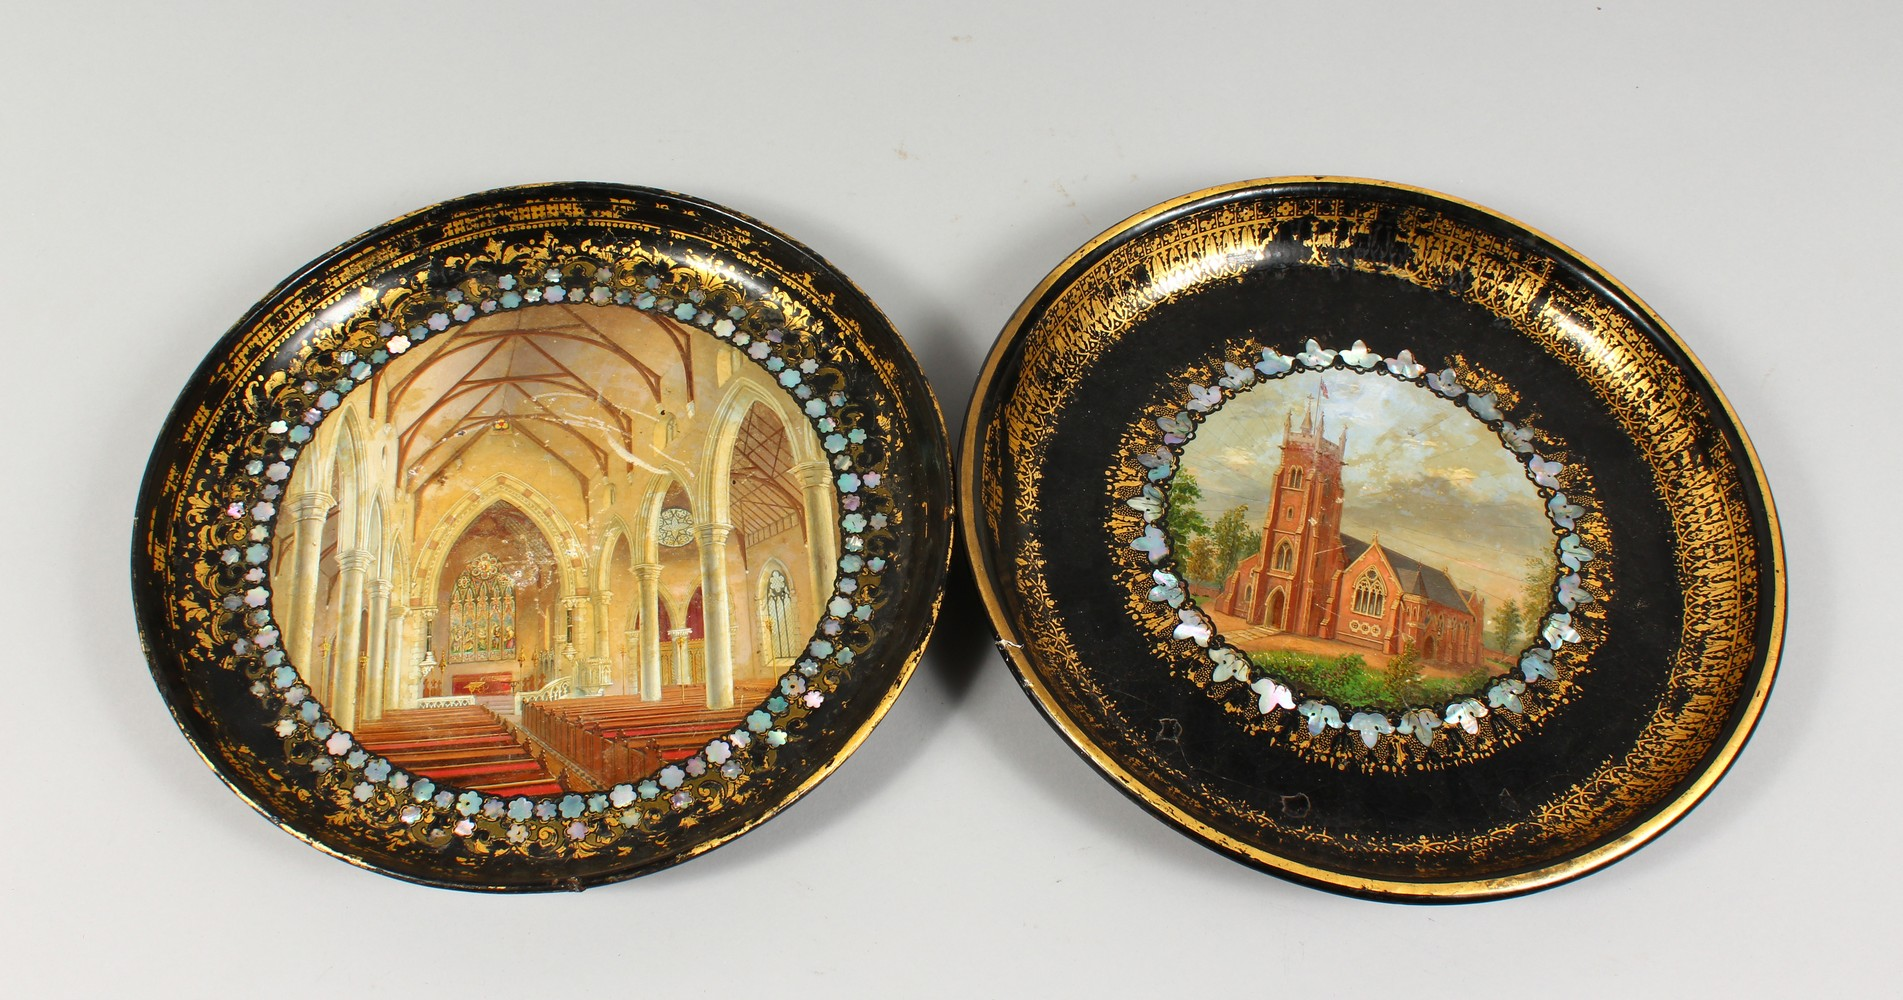 Lot 1395 - TWO VICTORIAN CIRCULAR PAPIER MACHE TRAYS, decorated with a church exterior and interior. 12ins